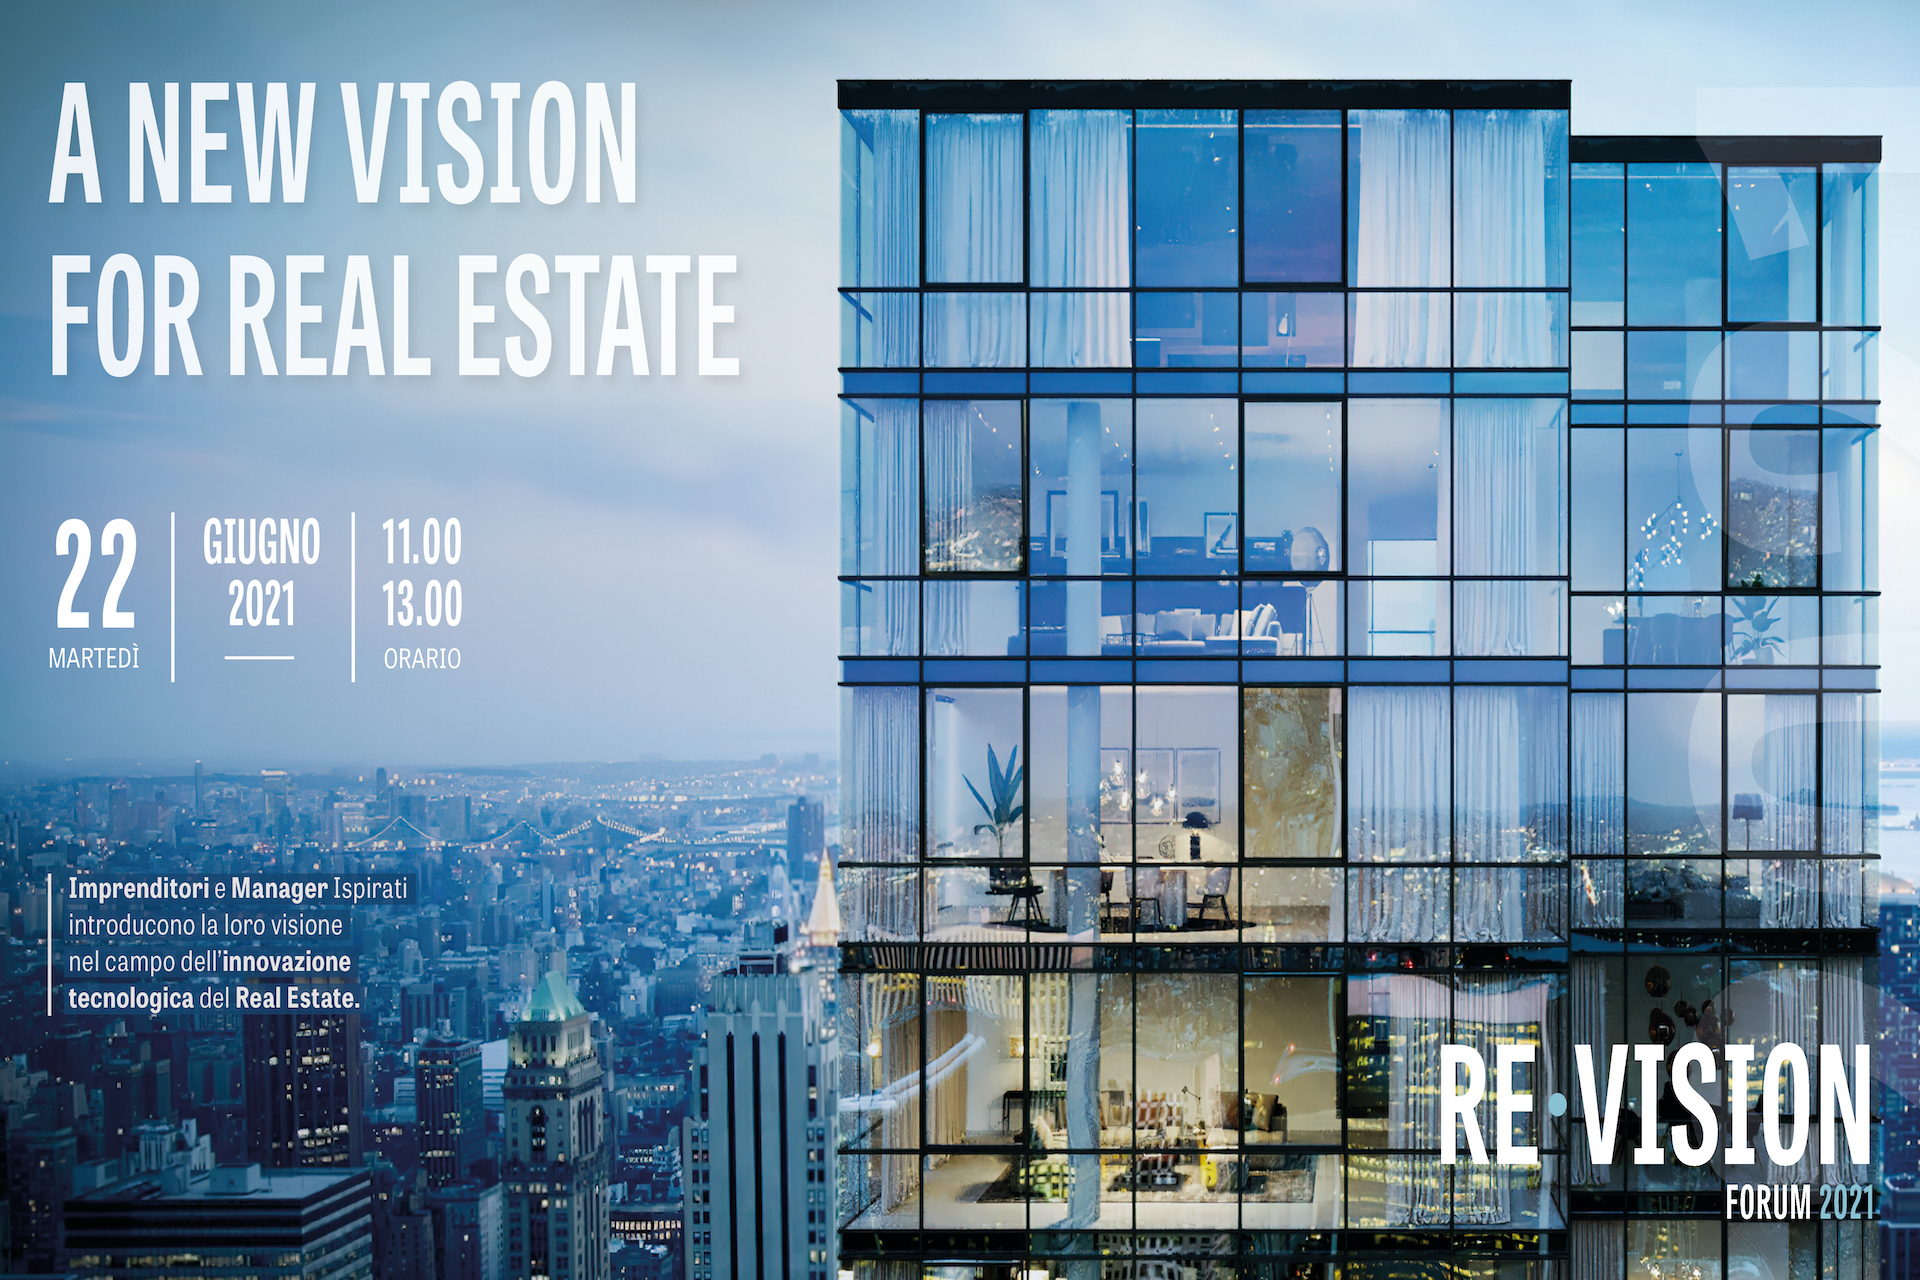 RE.VISION 2021